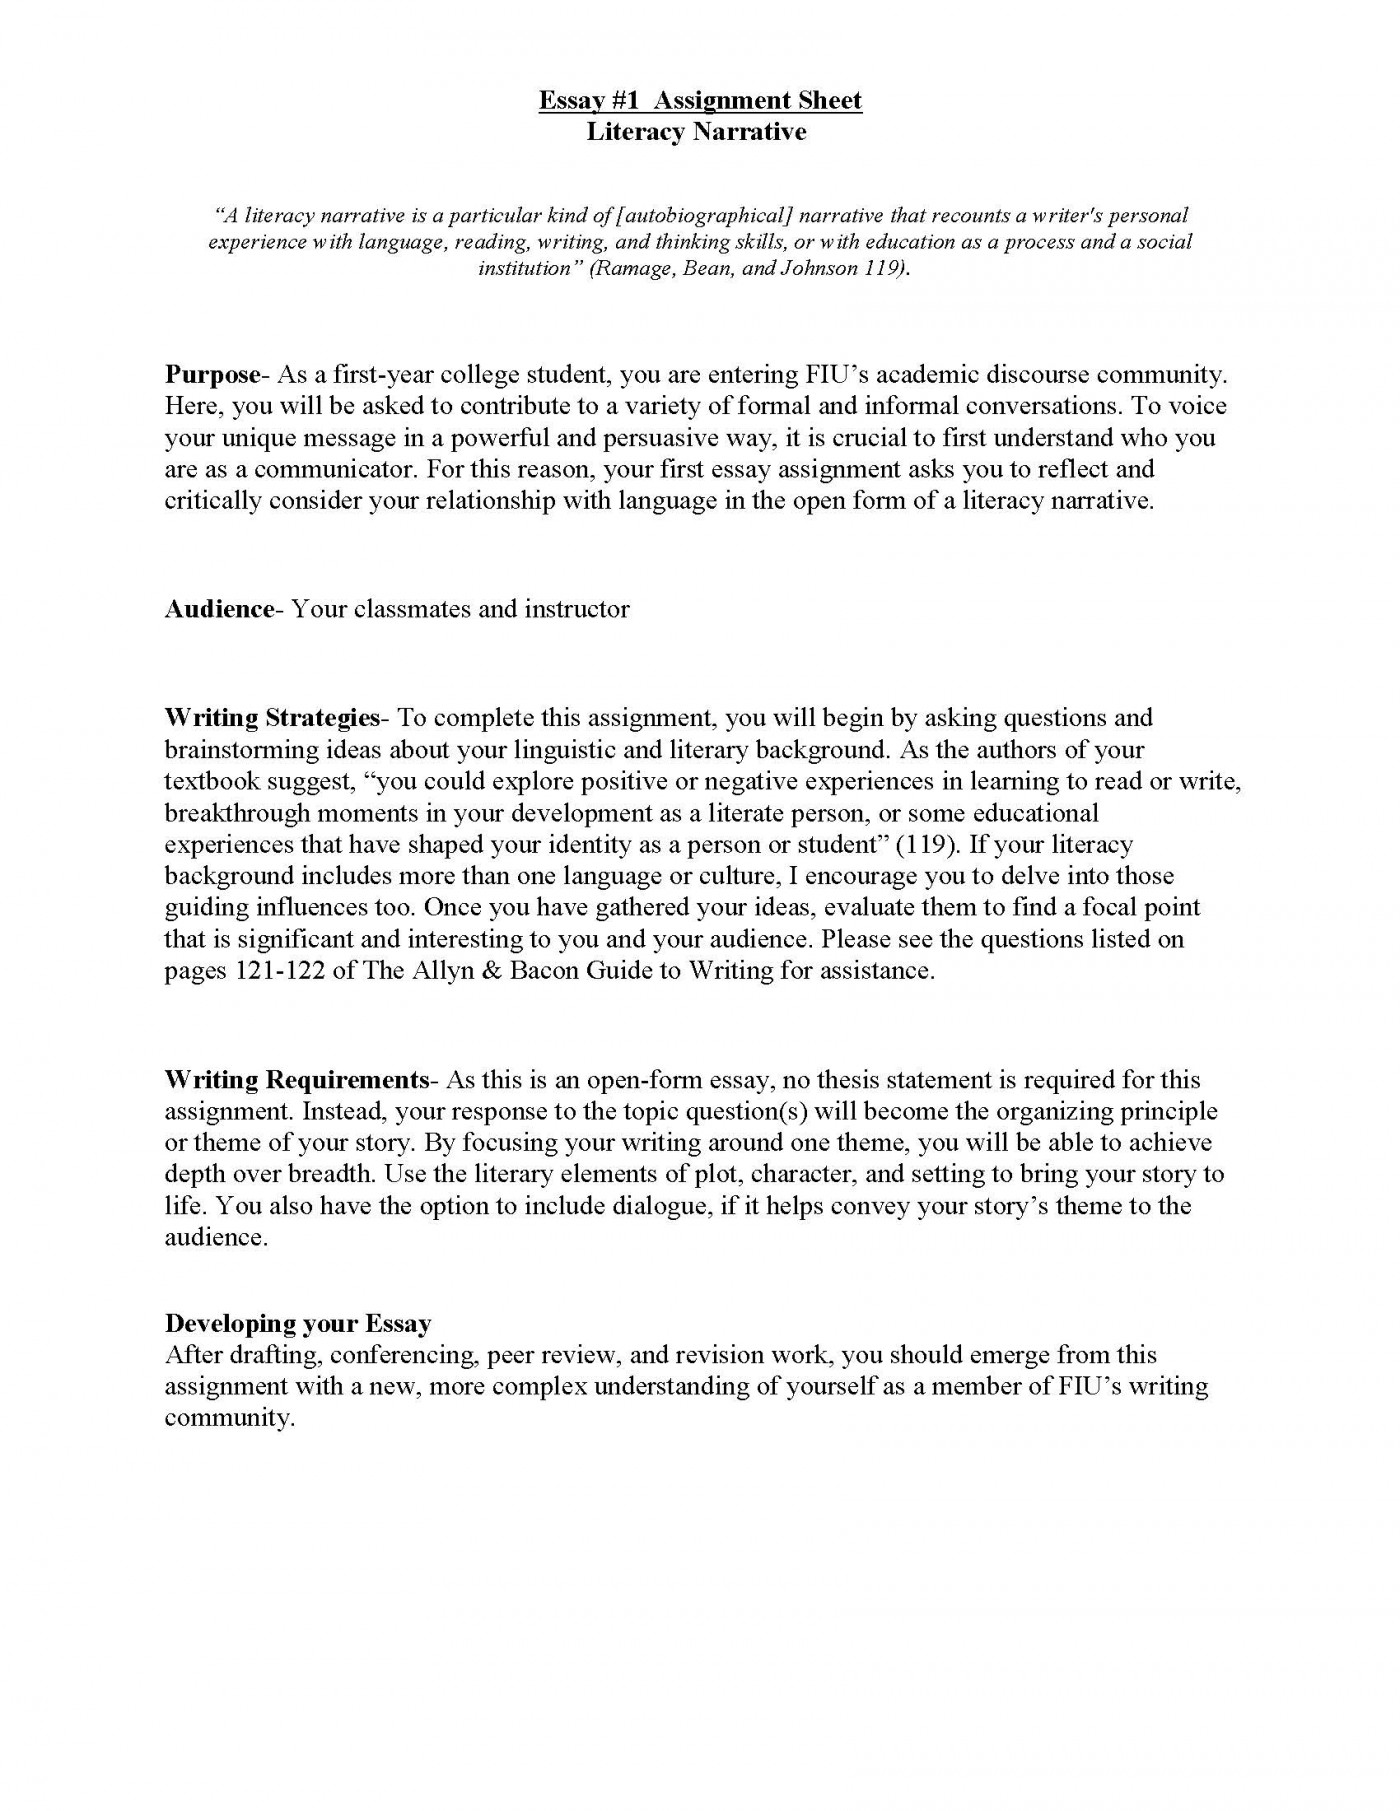 013 Essay Example Literacy Narrative Unitssignment Spring 2012 Page 1 Writing Amazing A About Being Judged Quizlet Powerpoint 1400